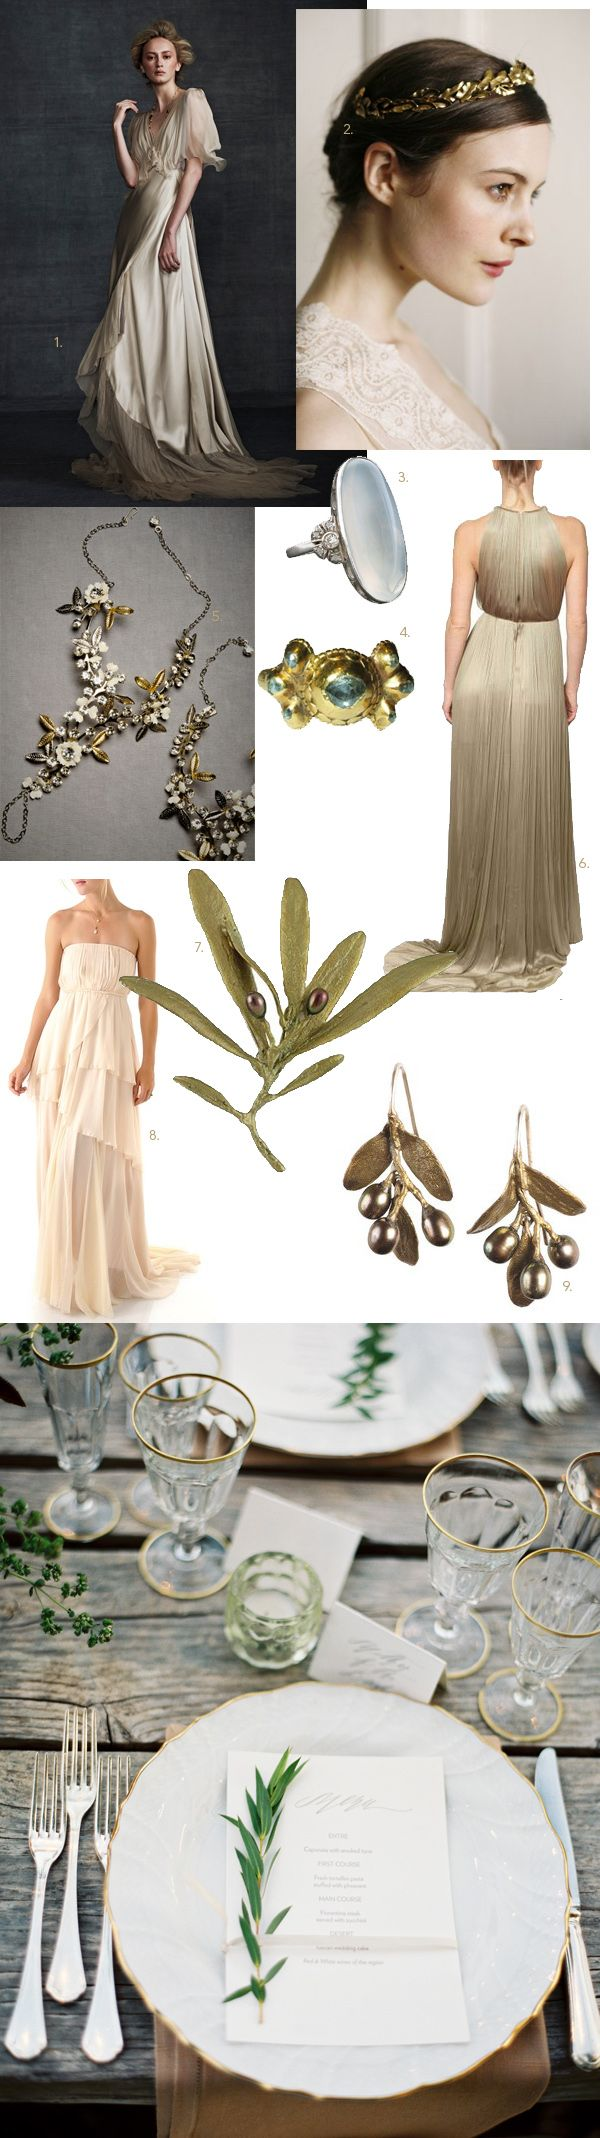 The best images about goddess glamour on pinterest ancient